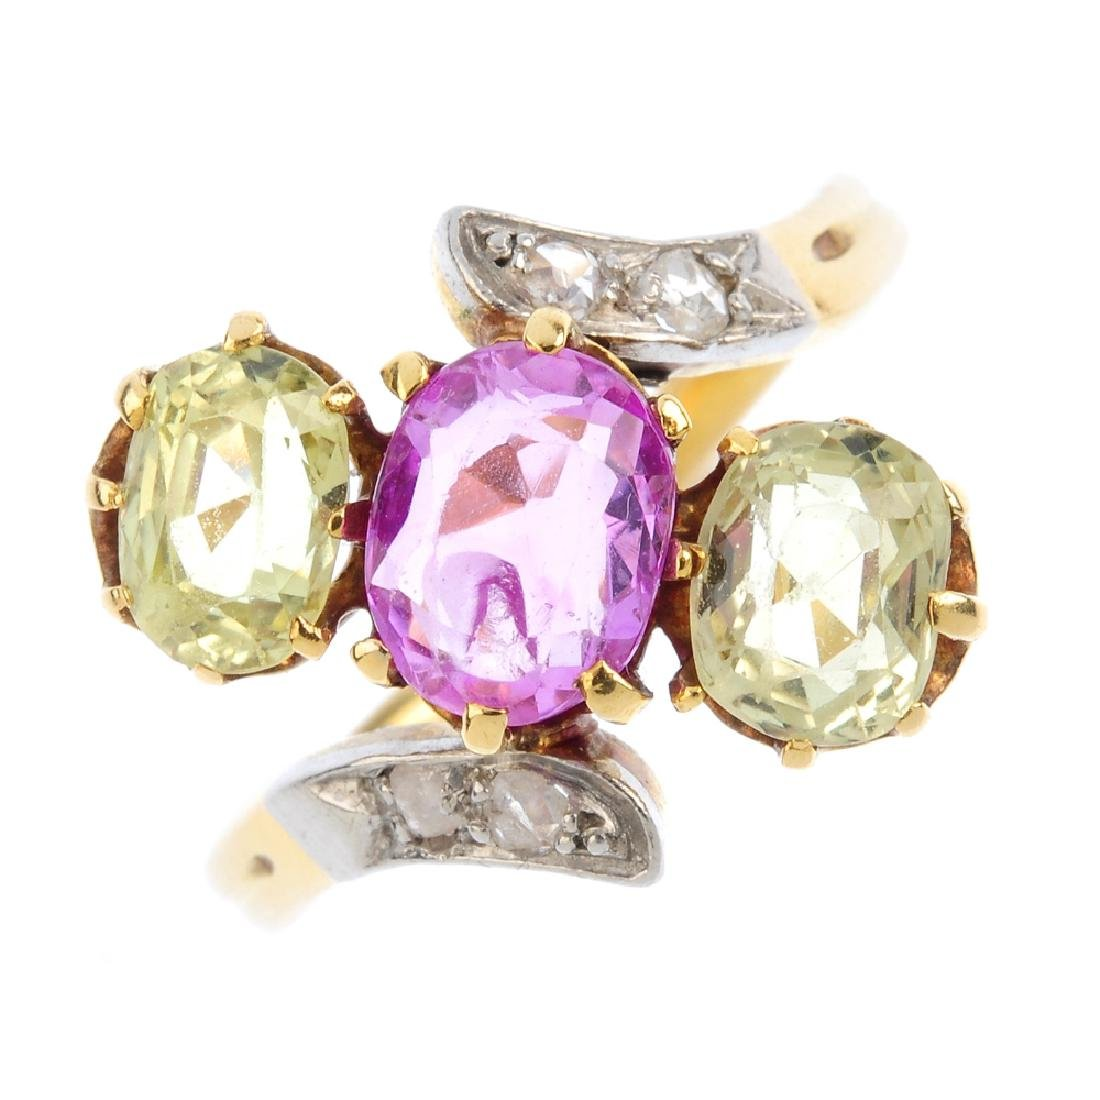 A sapphire and chrysoberyl three-stone ring. The